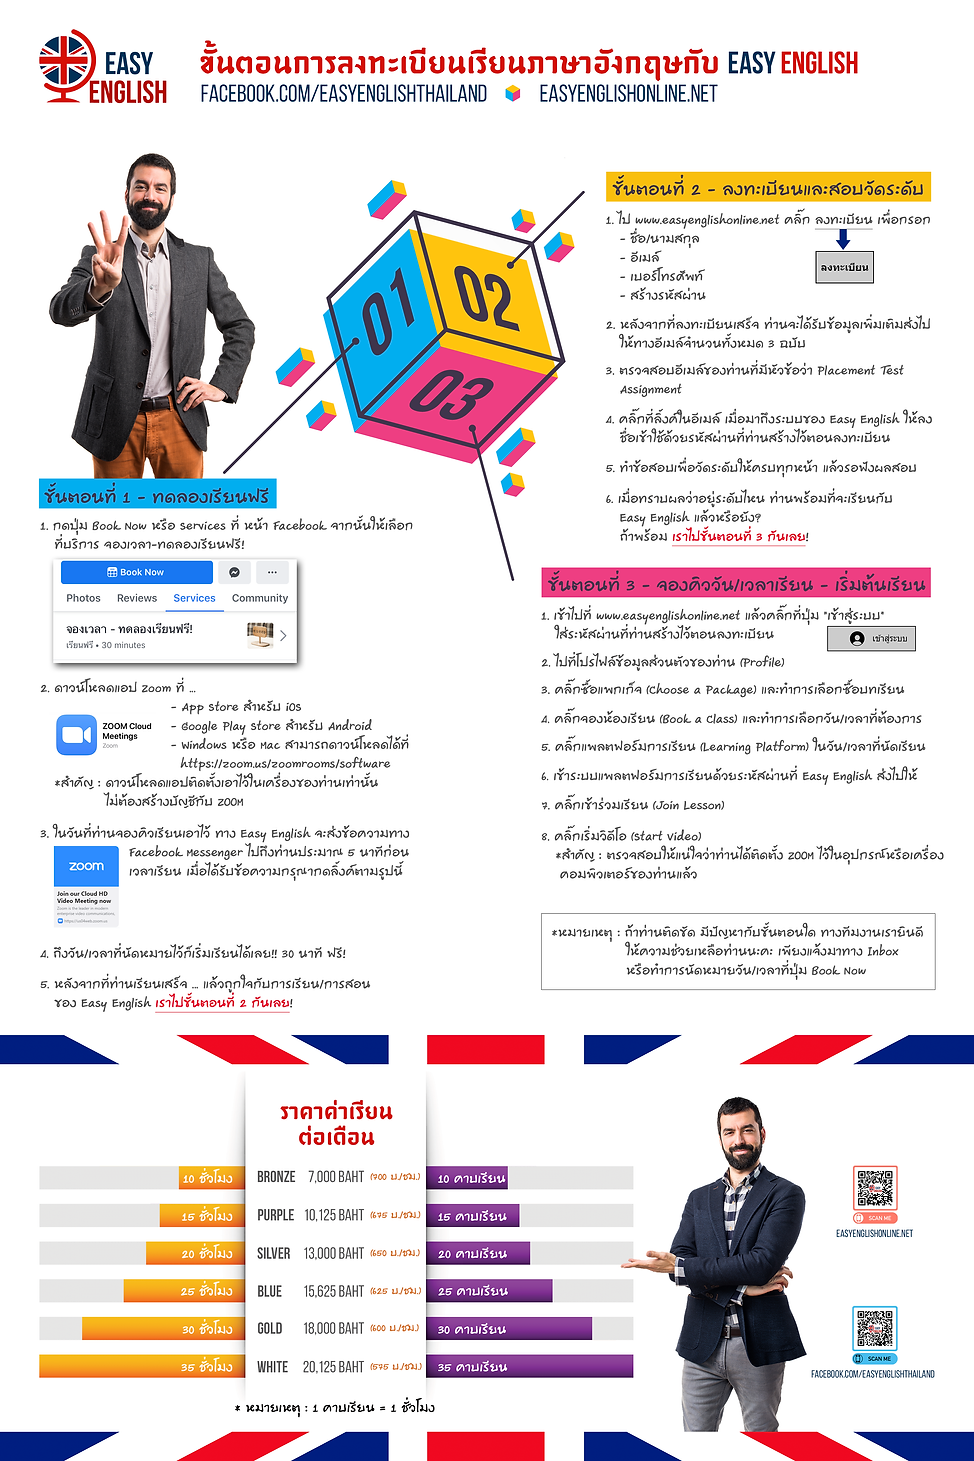 Easy-English-Infographic-3000x4500.png